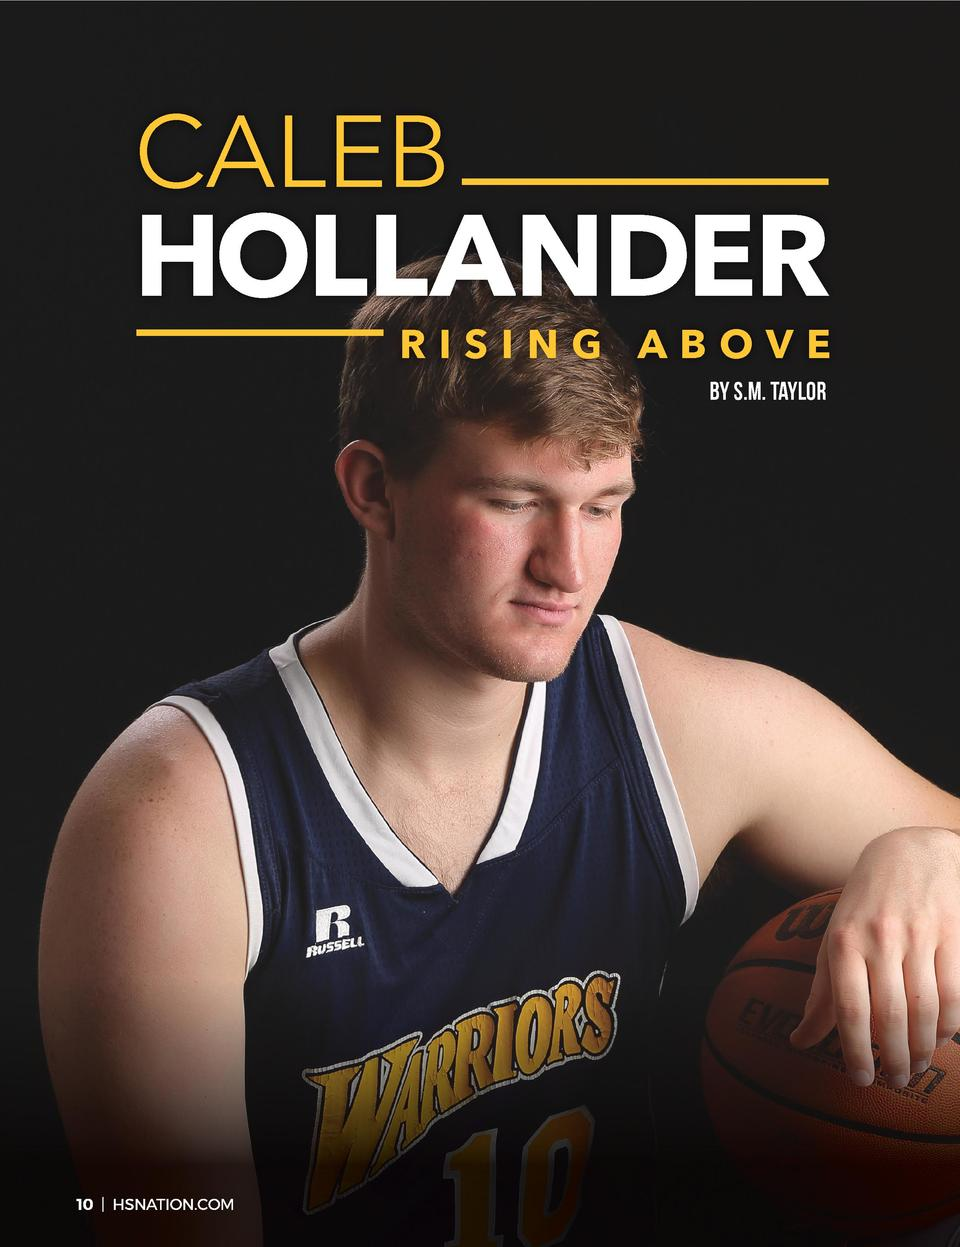 CALEB  HOLLANDER  RISING ABOVE BY S.M. TAYLOR  10   HSNATION.COM